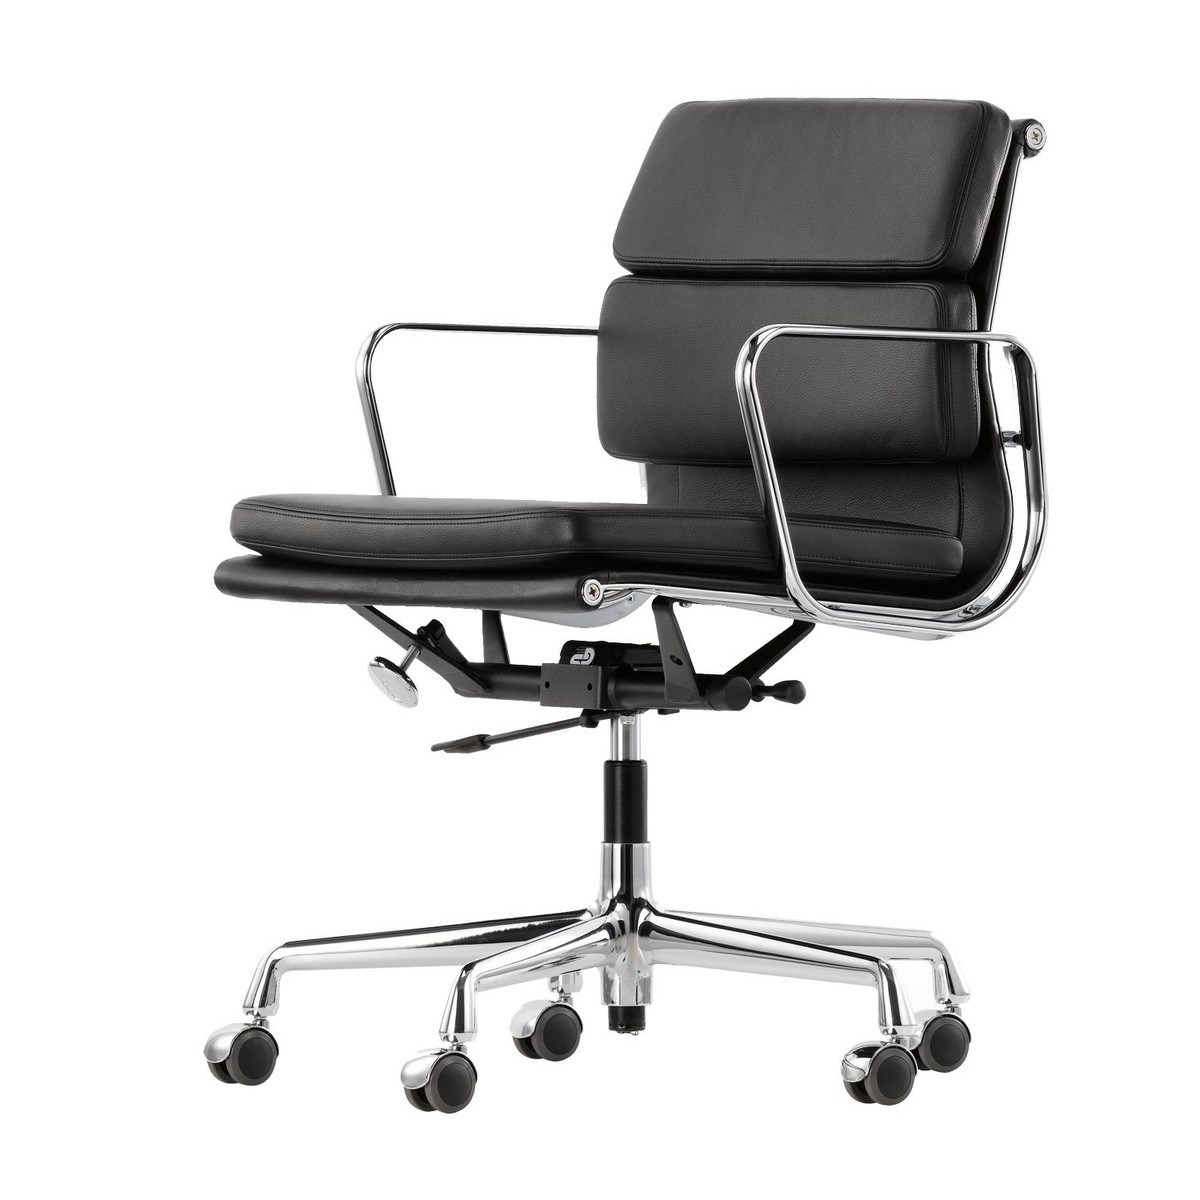 Ea 217 Soft Pad Eames Alu Chair Office Chair Vitra